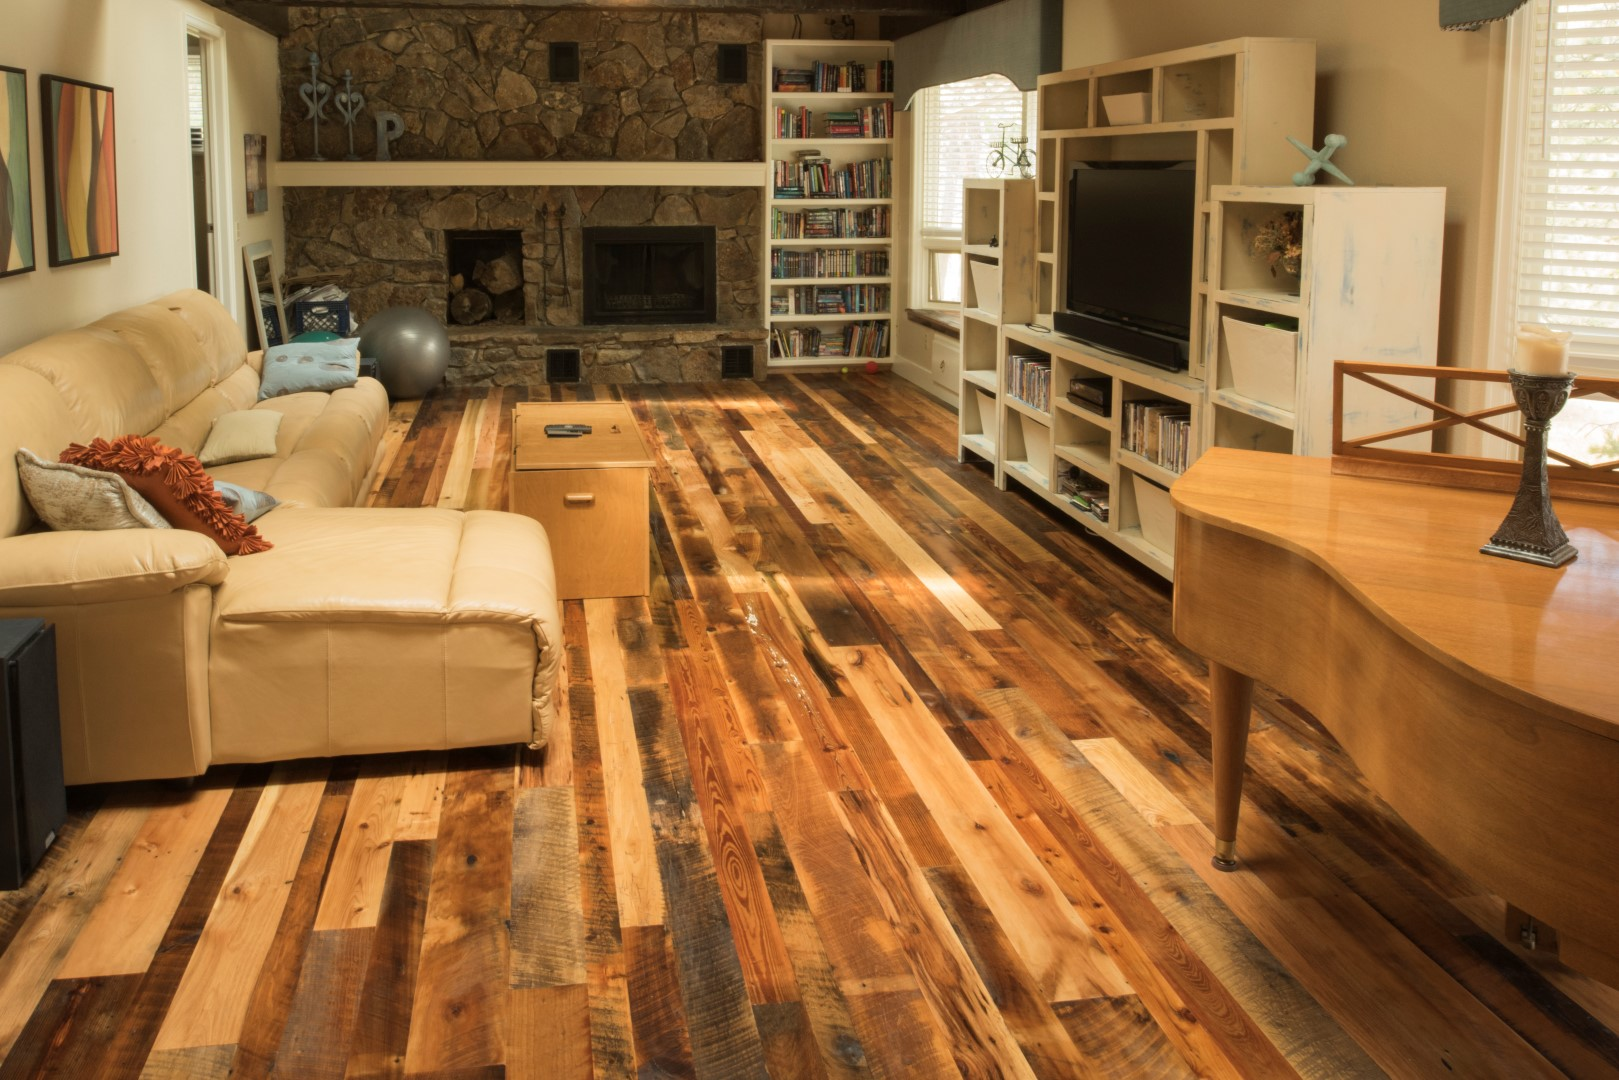 Home Renovation Ideas And Incorporating Hardwood Flooring In